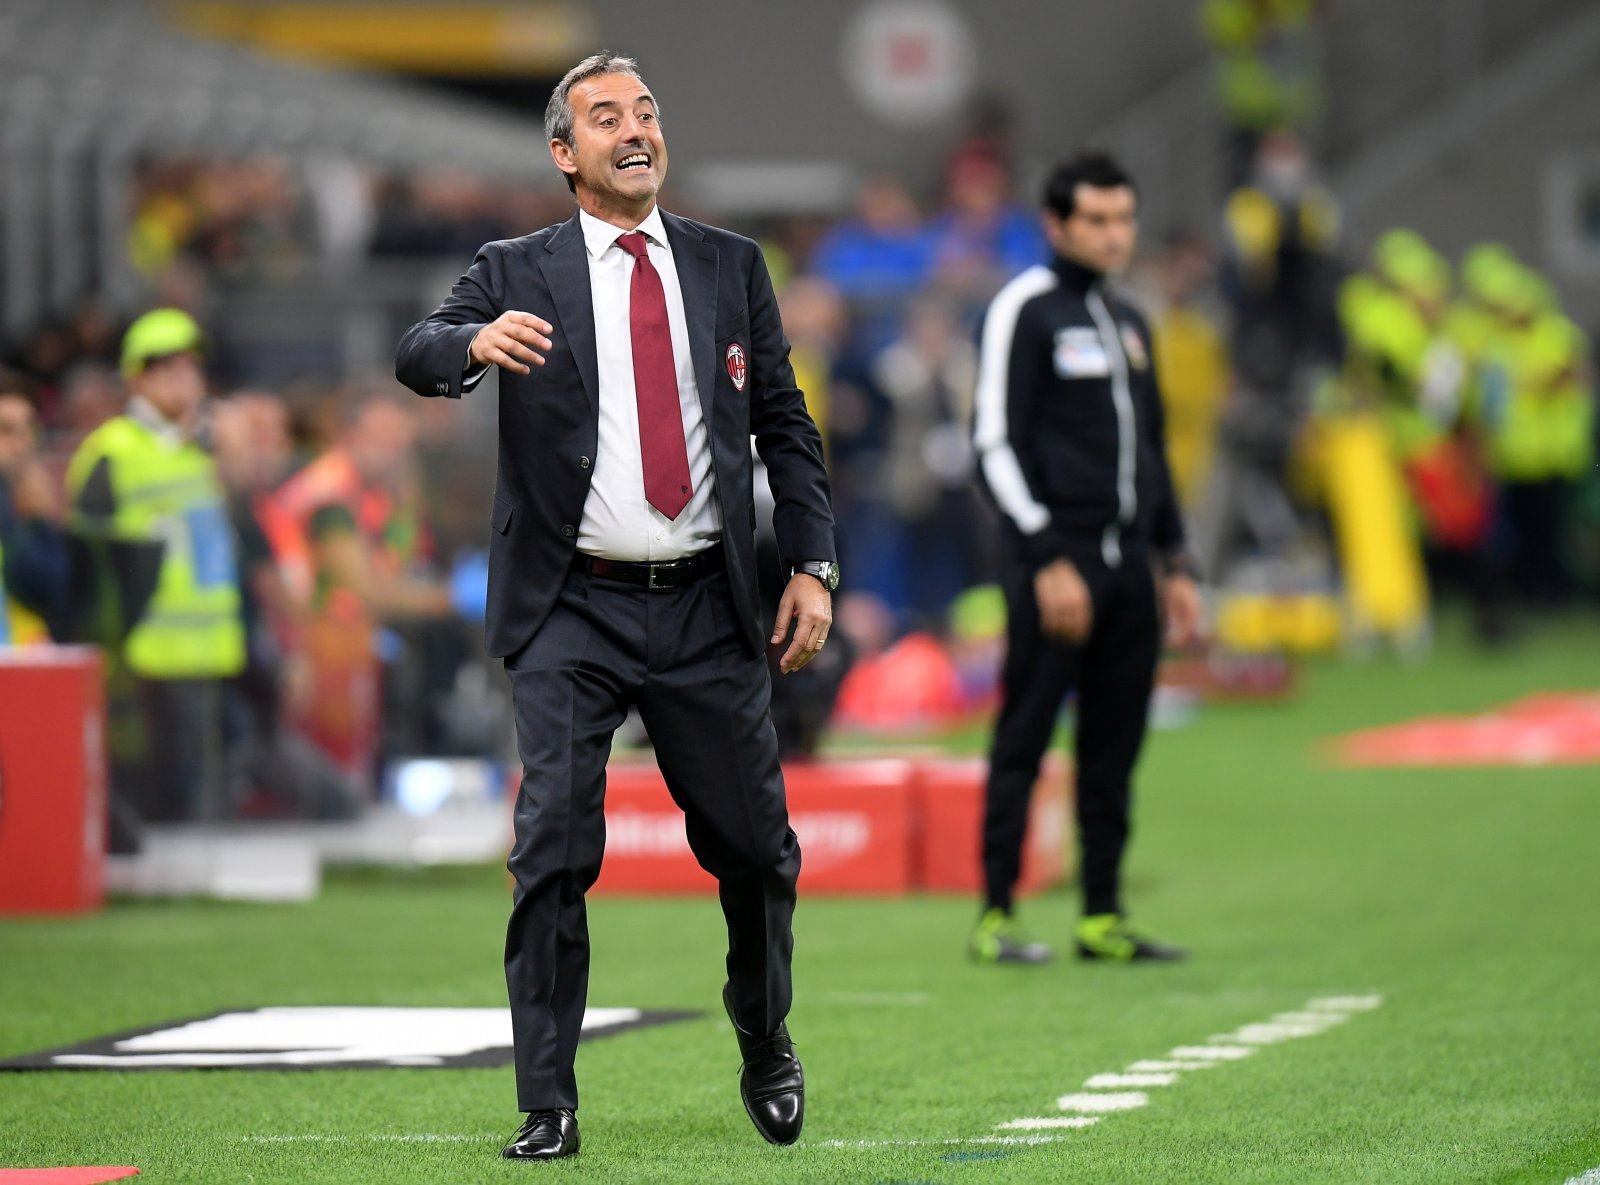 AC Milan: Many fans want Marco Giampaolo to be sacked after Fiorentina loss